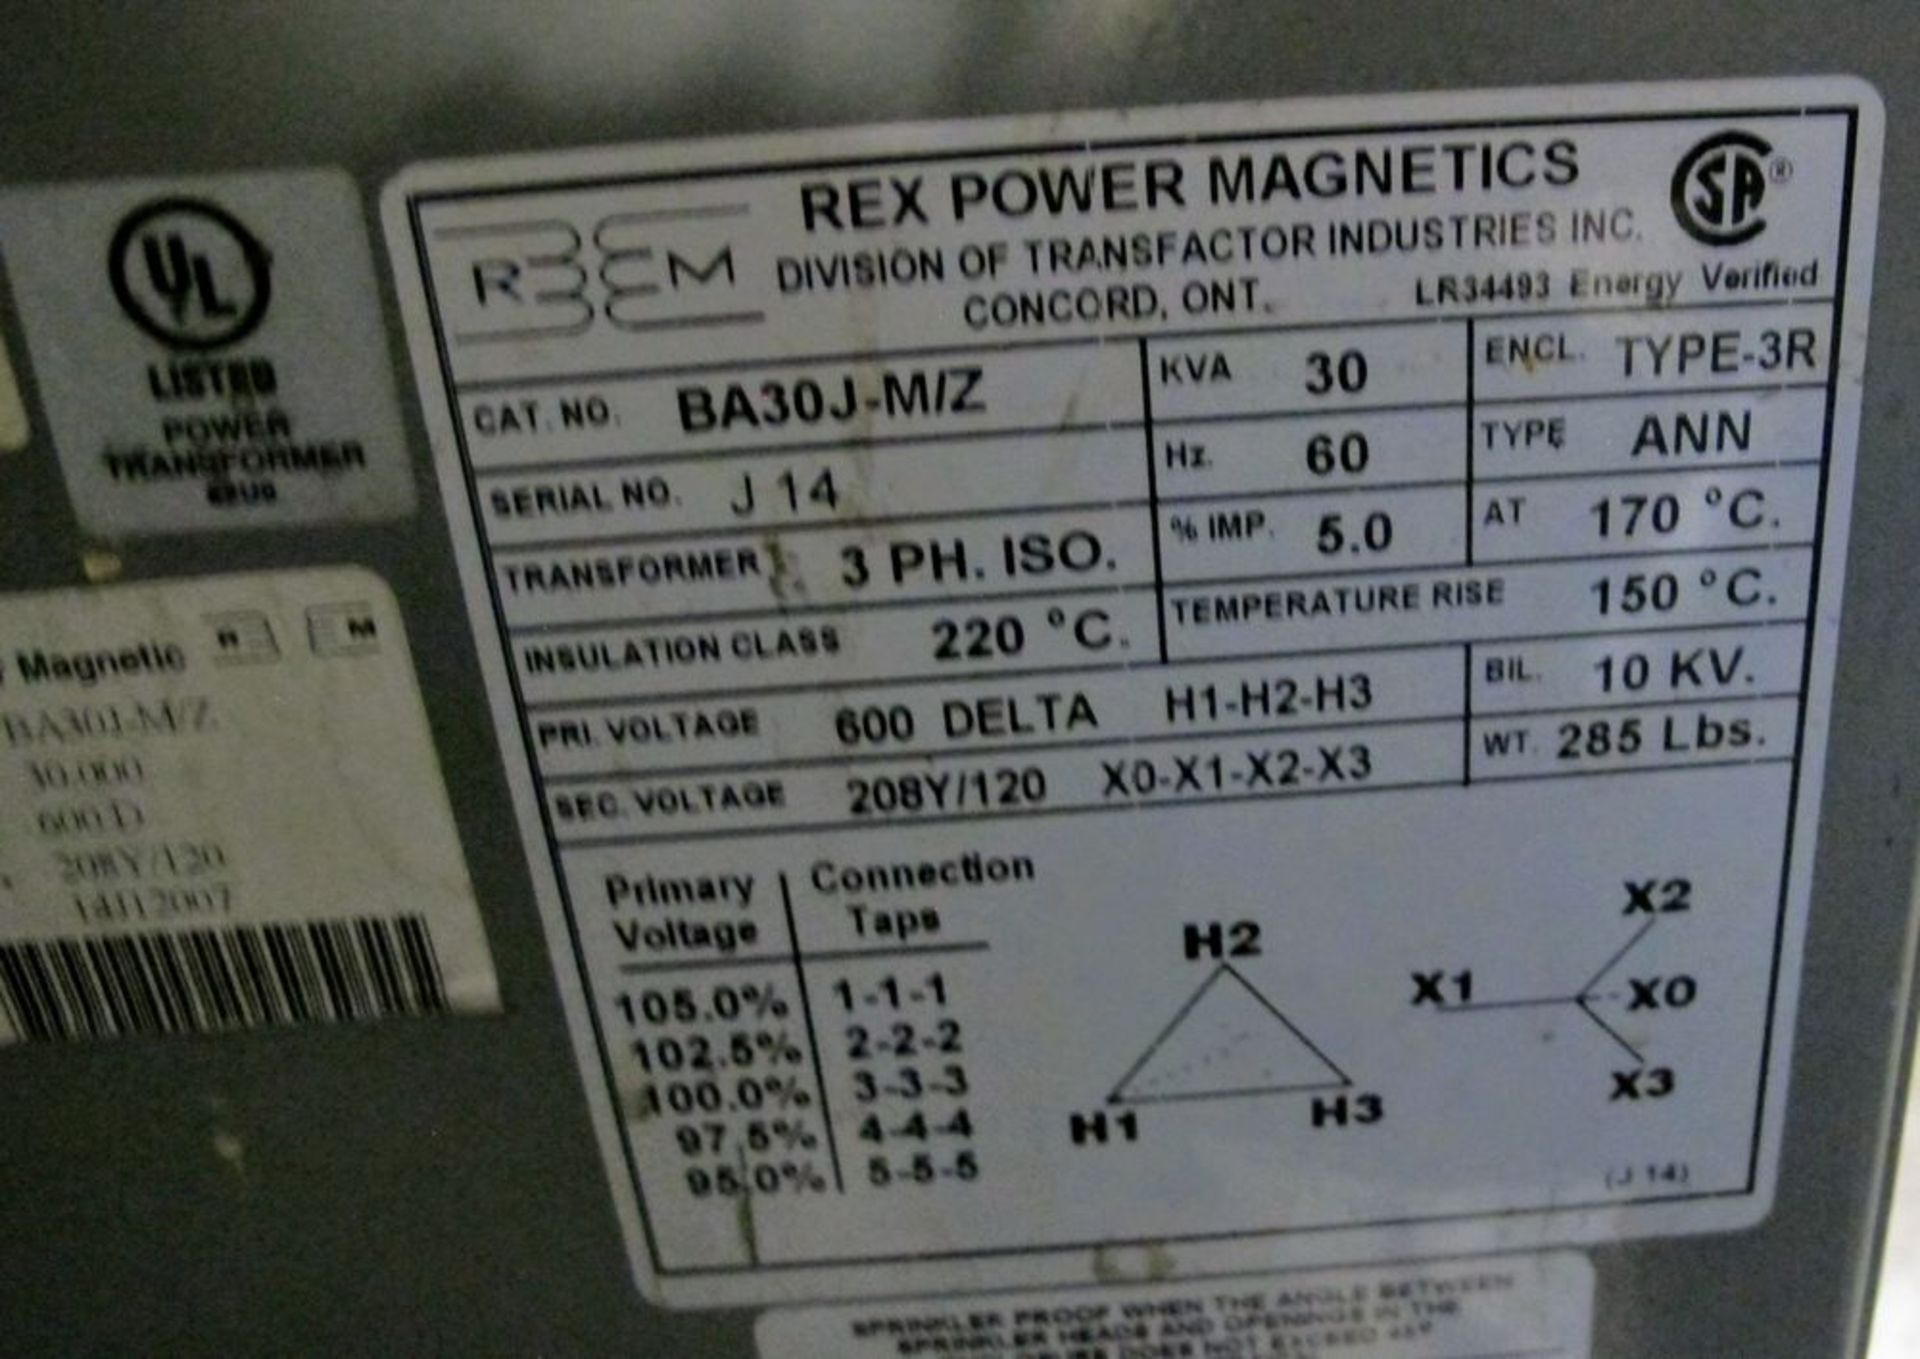 Lot 70 - REX POWER MAGNETICS TRANSFORMER, 30KVA, 600V PRIMARY, 208/120 SECONDARY